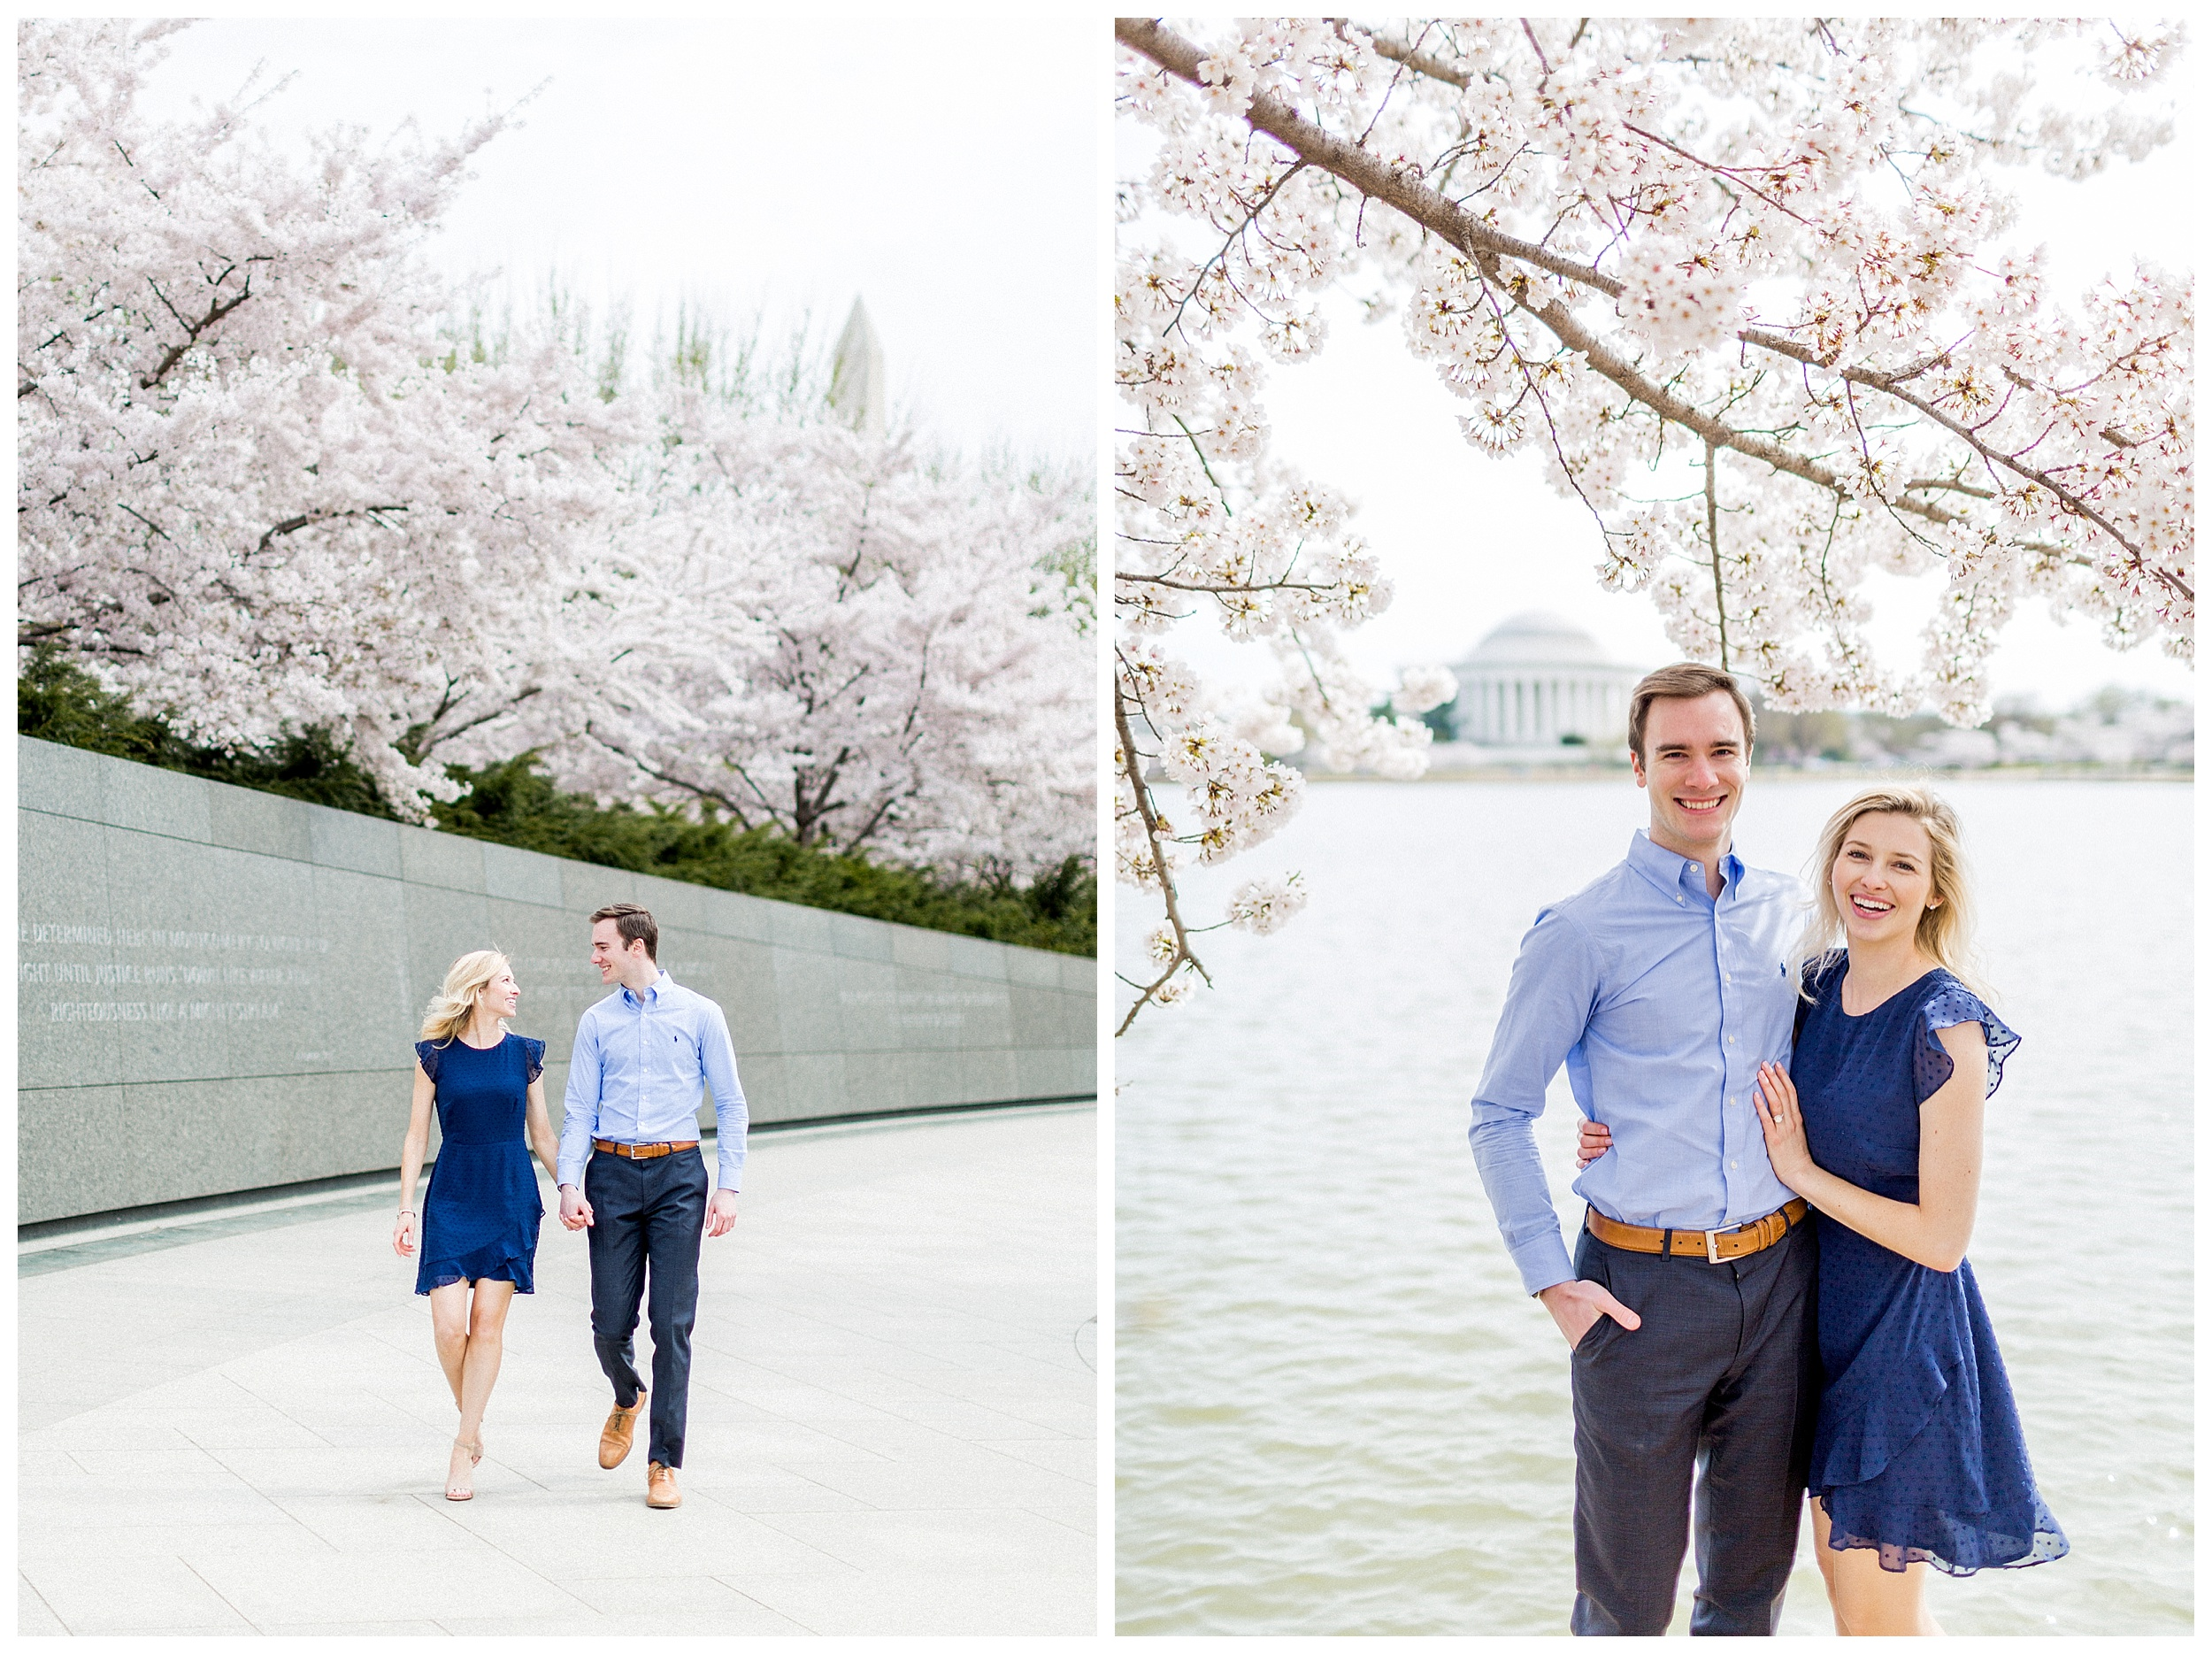 District of Columbia Cherry Blossom Engagement Session_0044.jpg